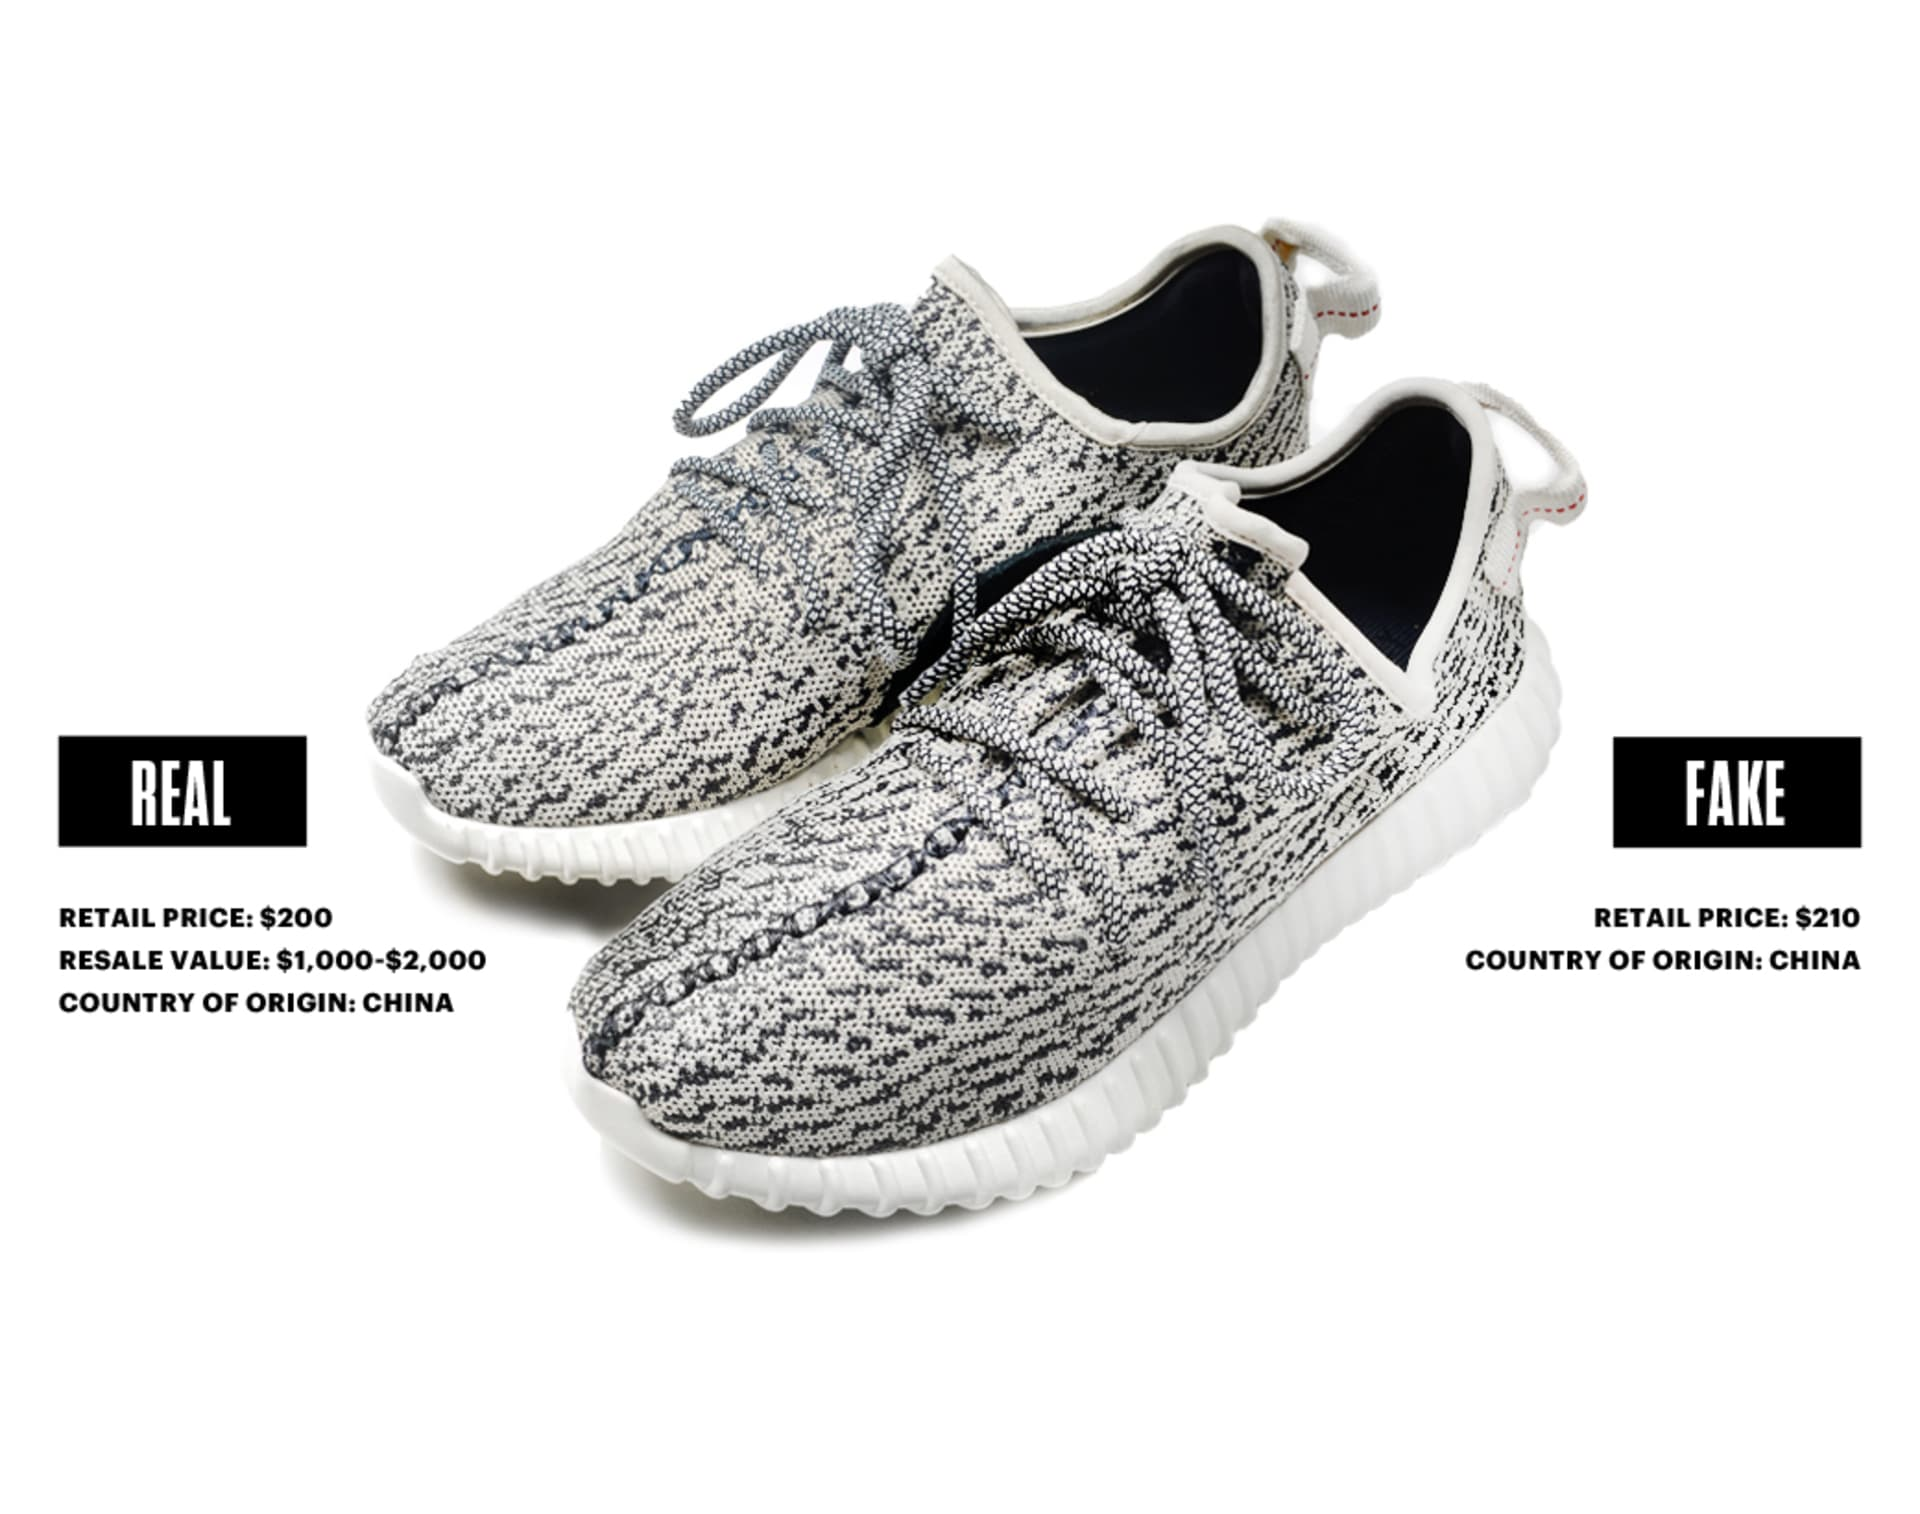 c58fc7965 Fake vs. Real Yeezy 350 Boosts. Photo by Liz Barclay.